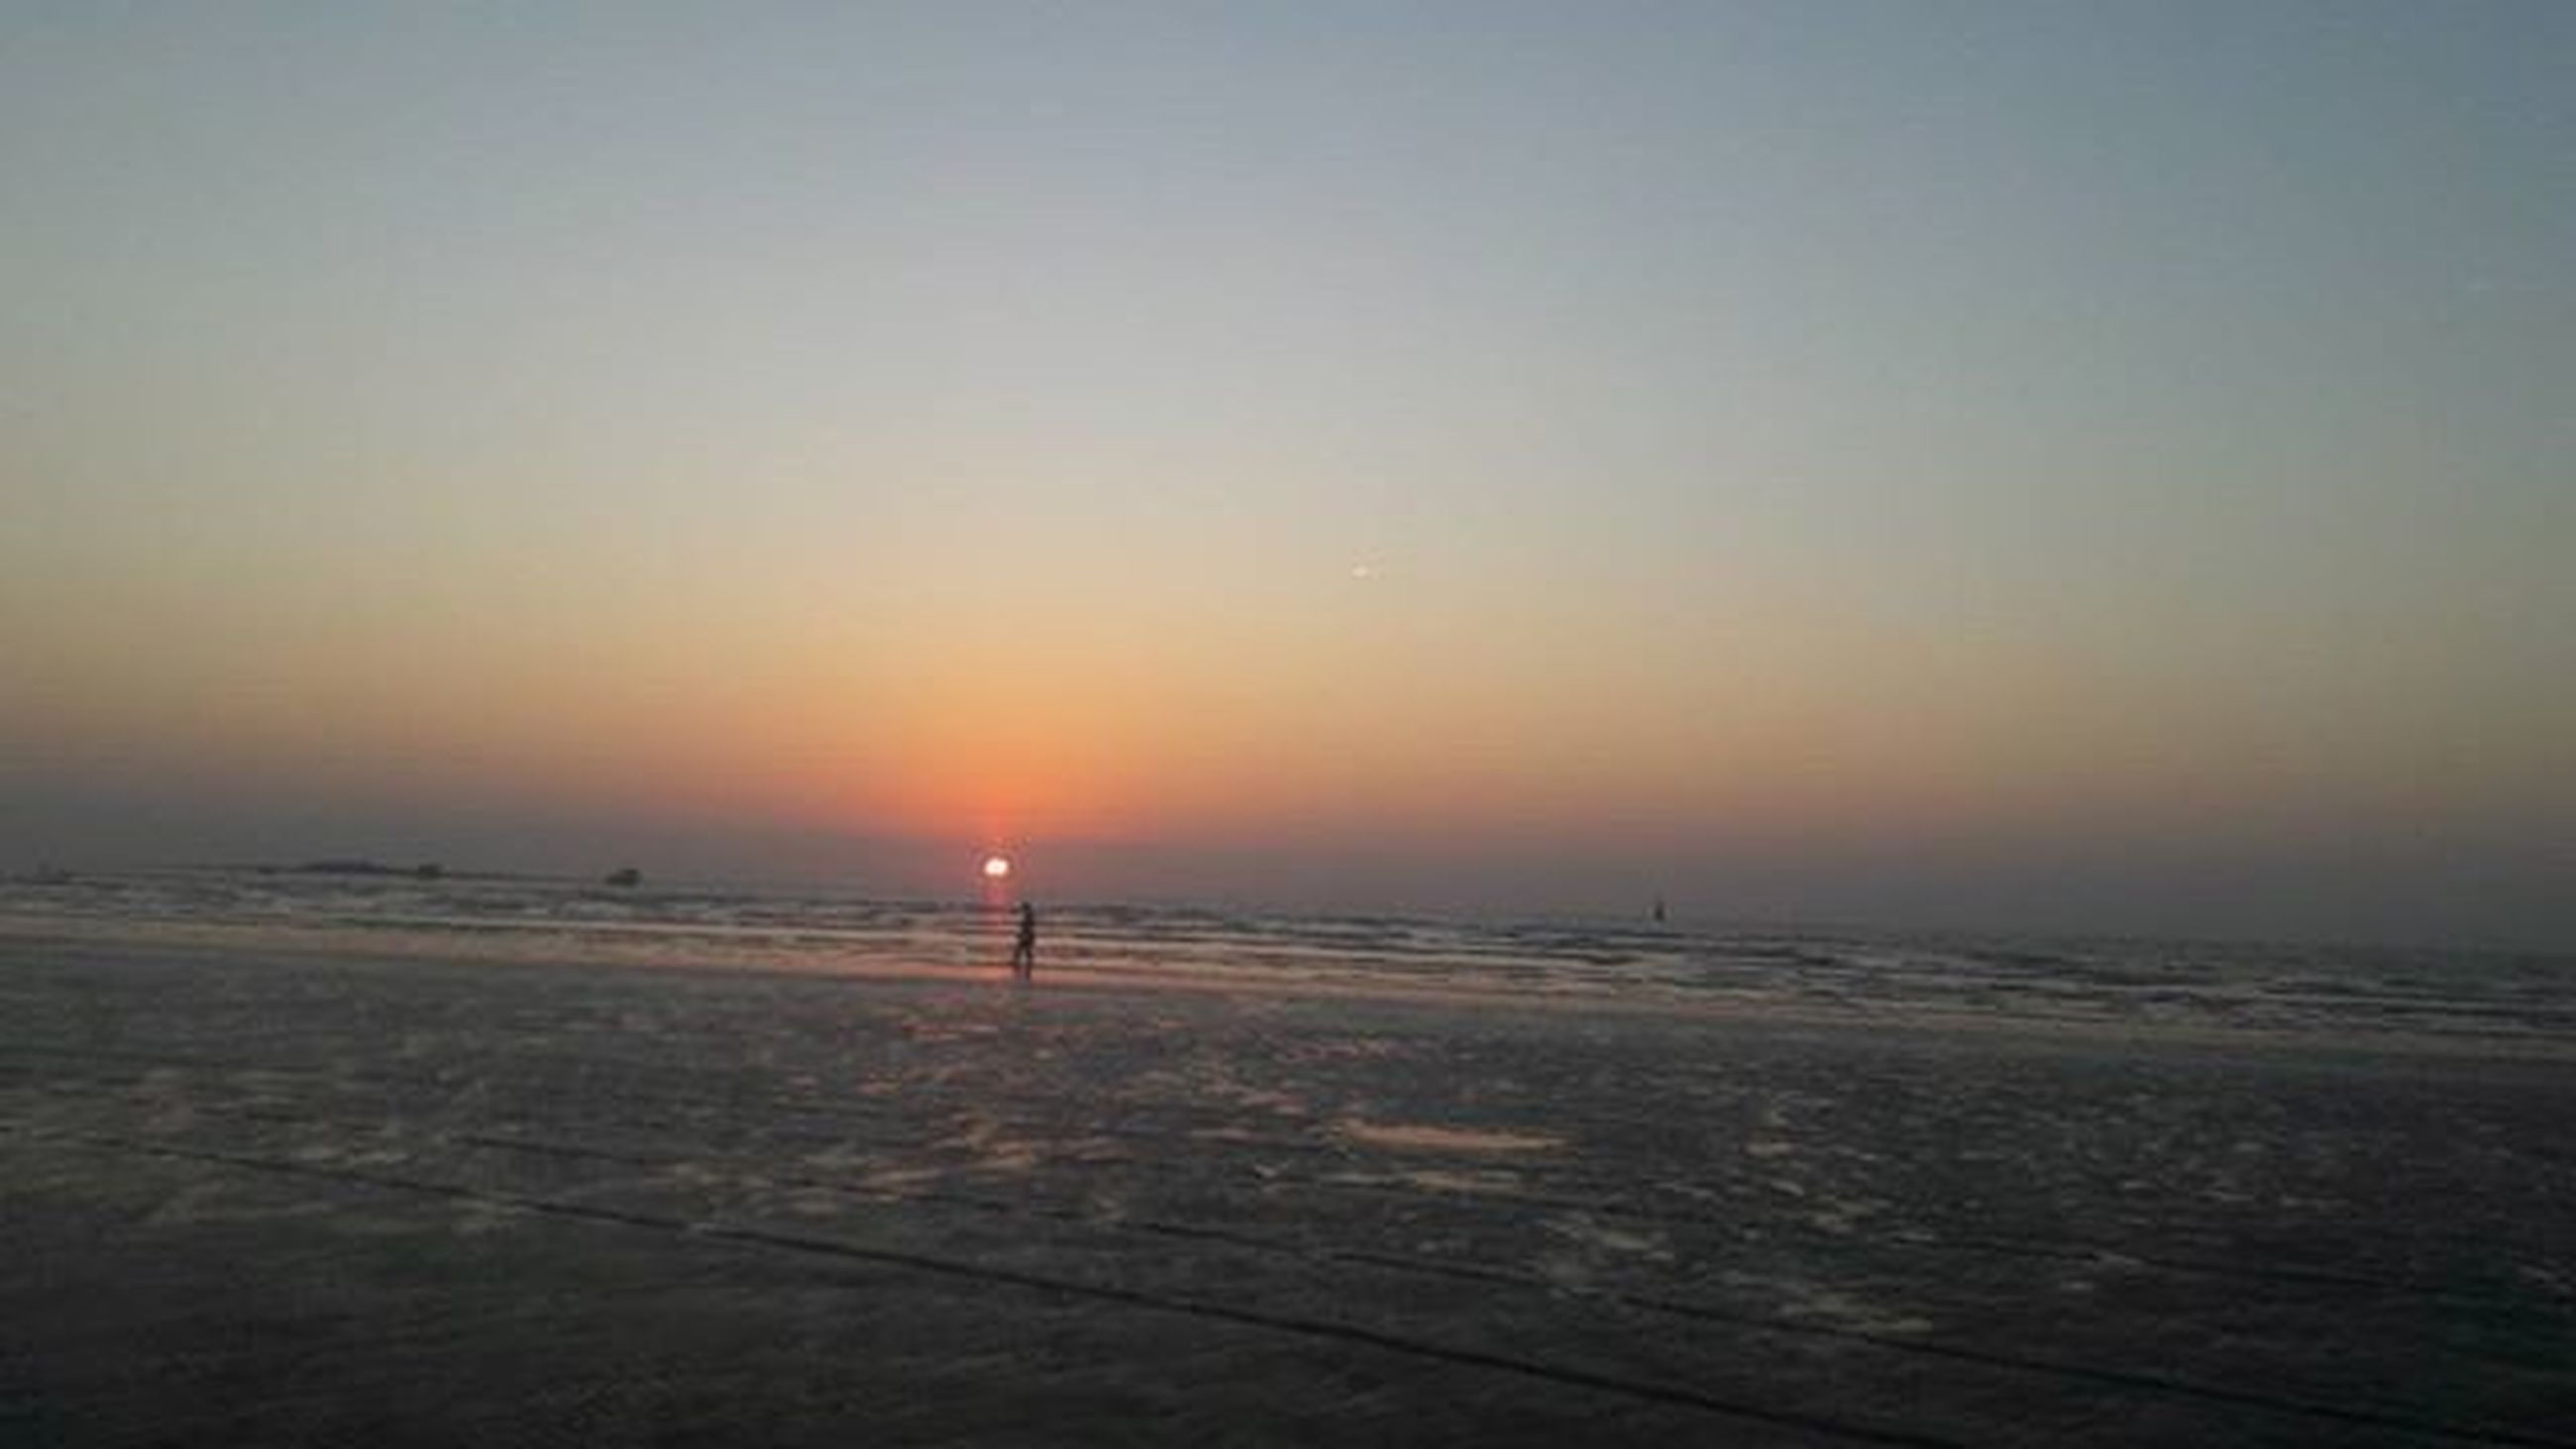 sunset, sea, horizon over water, water, beach, tranquil scene, scenics, tranquility, beauty in nature, shore, orange color, idyllic, nature, sun, copy space, clear sky, sky, sand, remote, silhouette